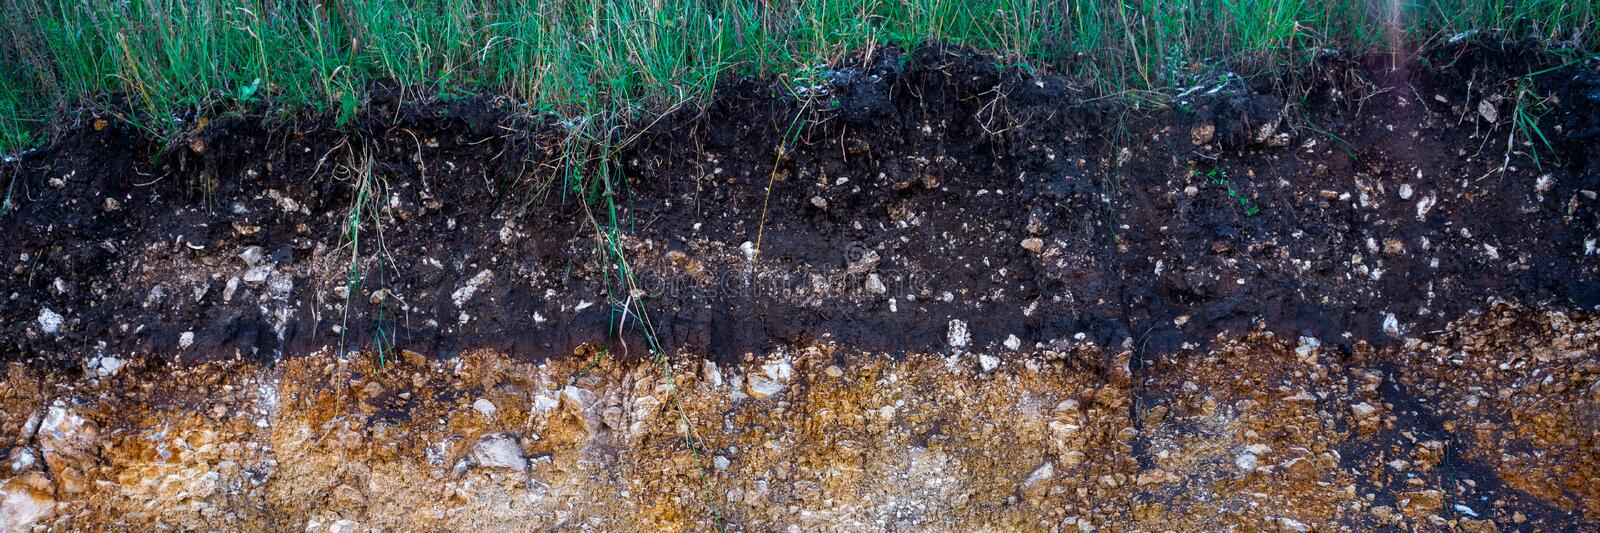 The curb erosion from storms. To indicate the layers of soil and rock. Nature cross section soil underground with green grass, royalty free stock image